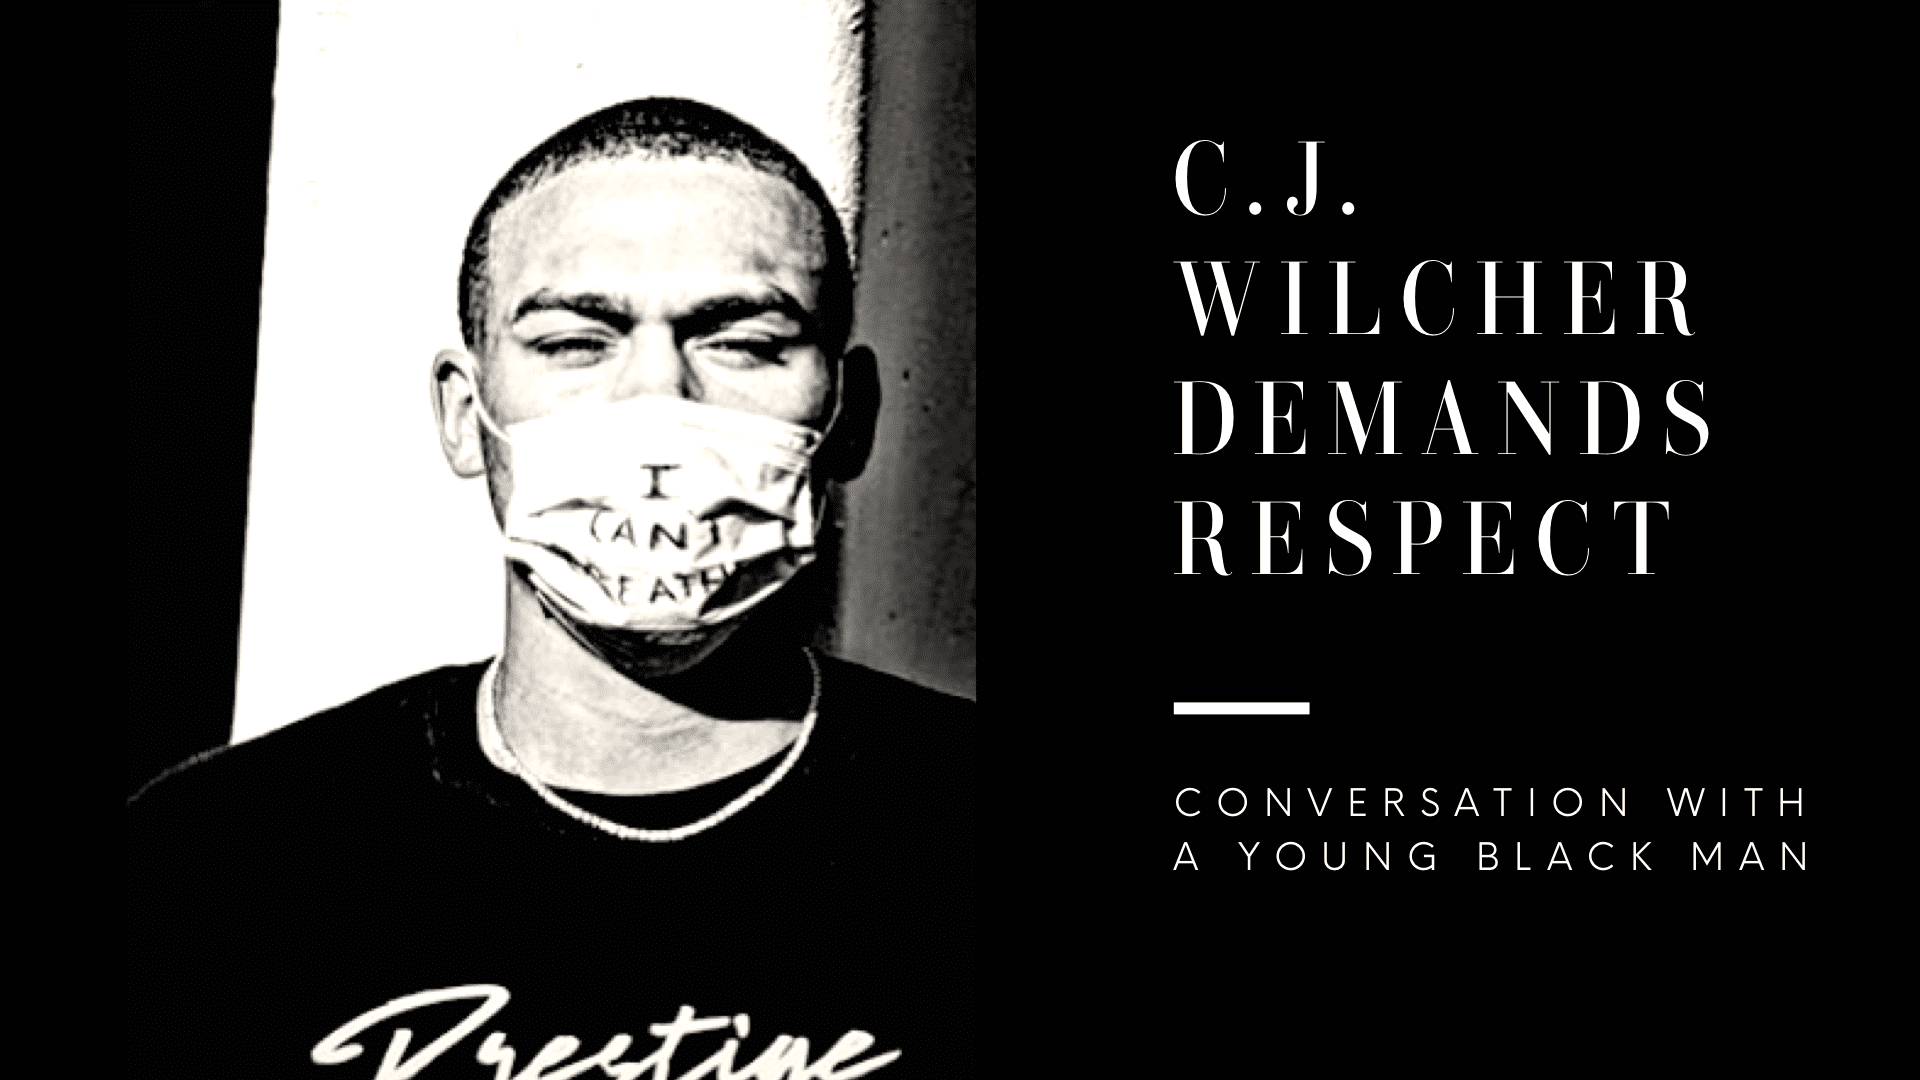 C.J. Wilcher Demands Respect: Conversation with a Young Black Man